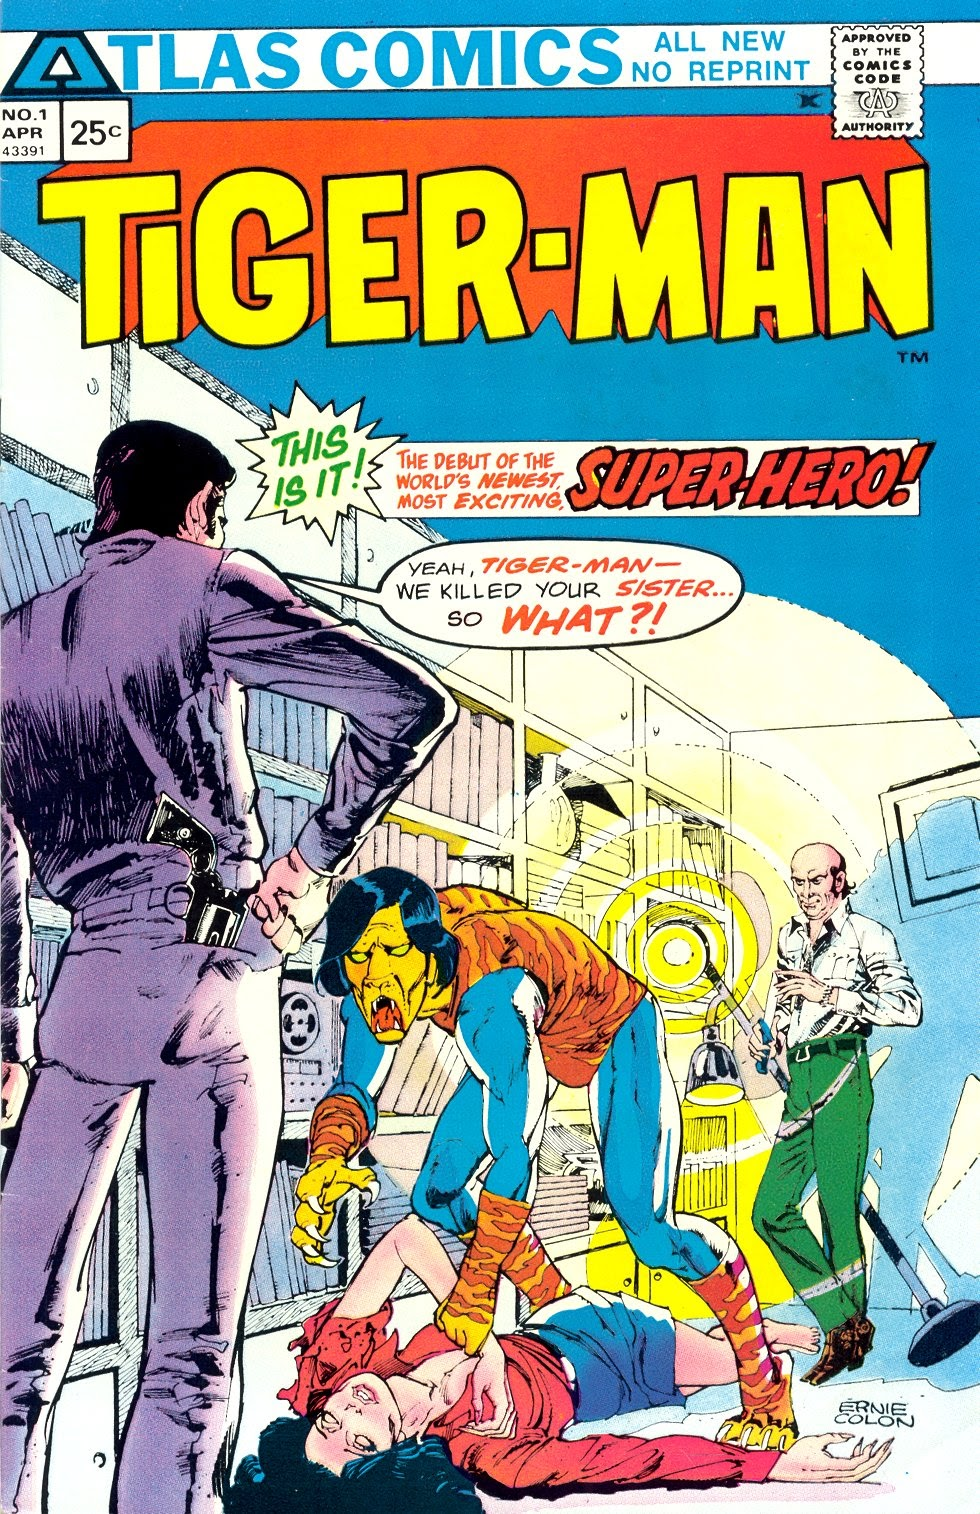 Read online Tiger-Man comic -  Issue #1 - 1